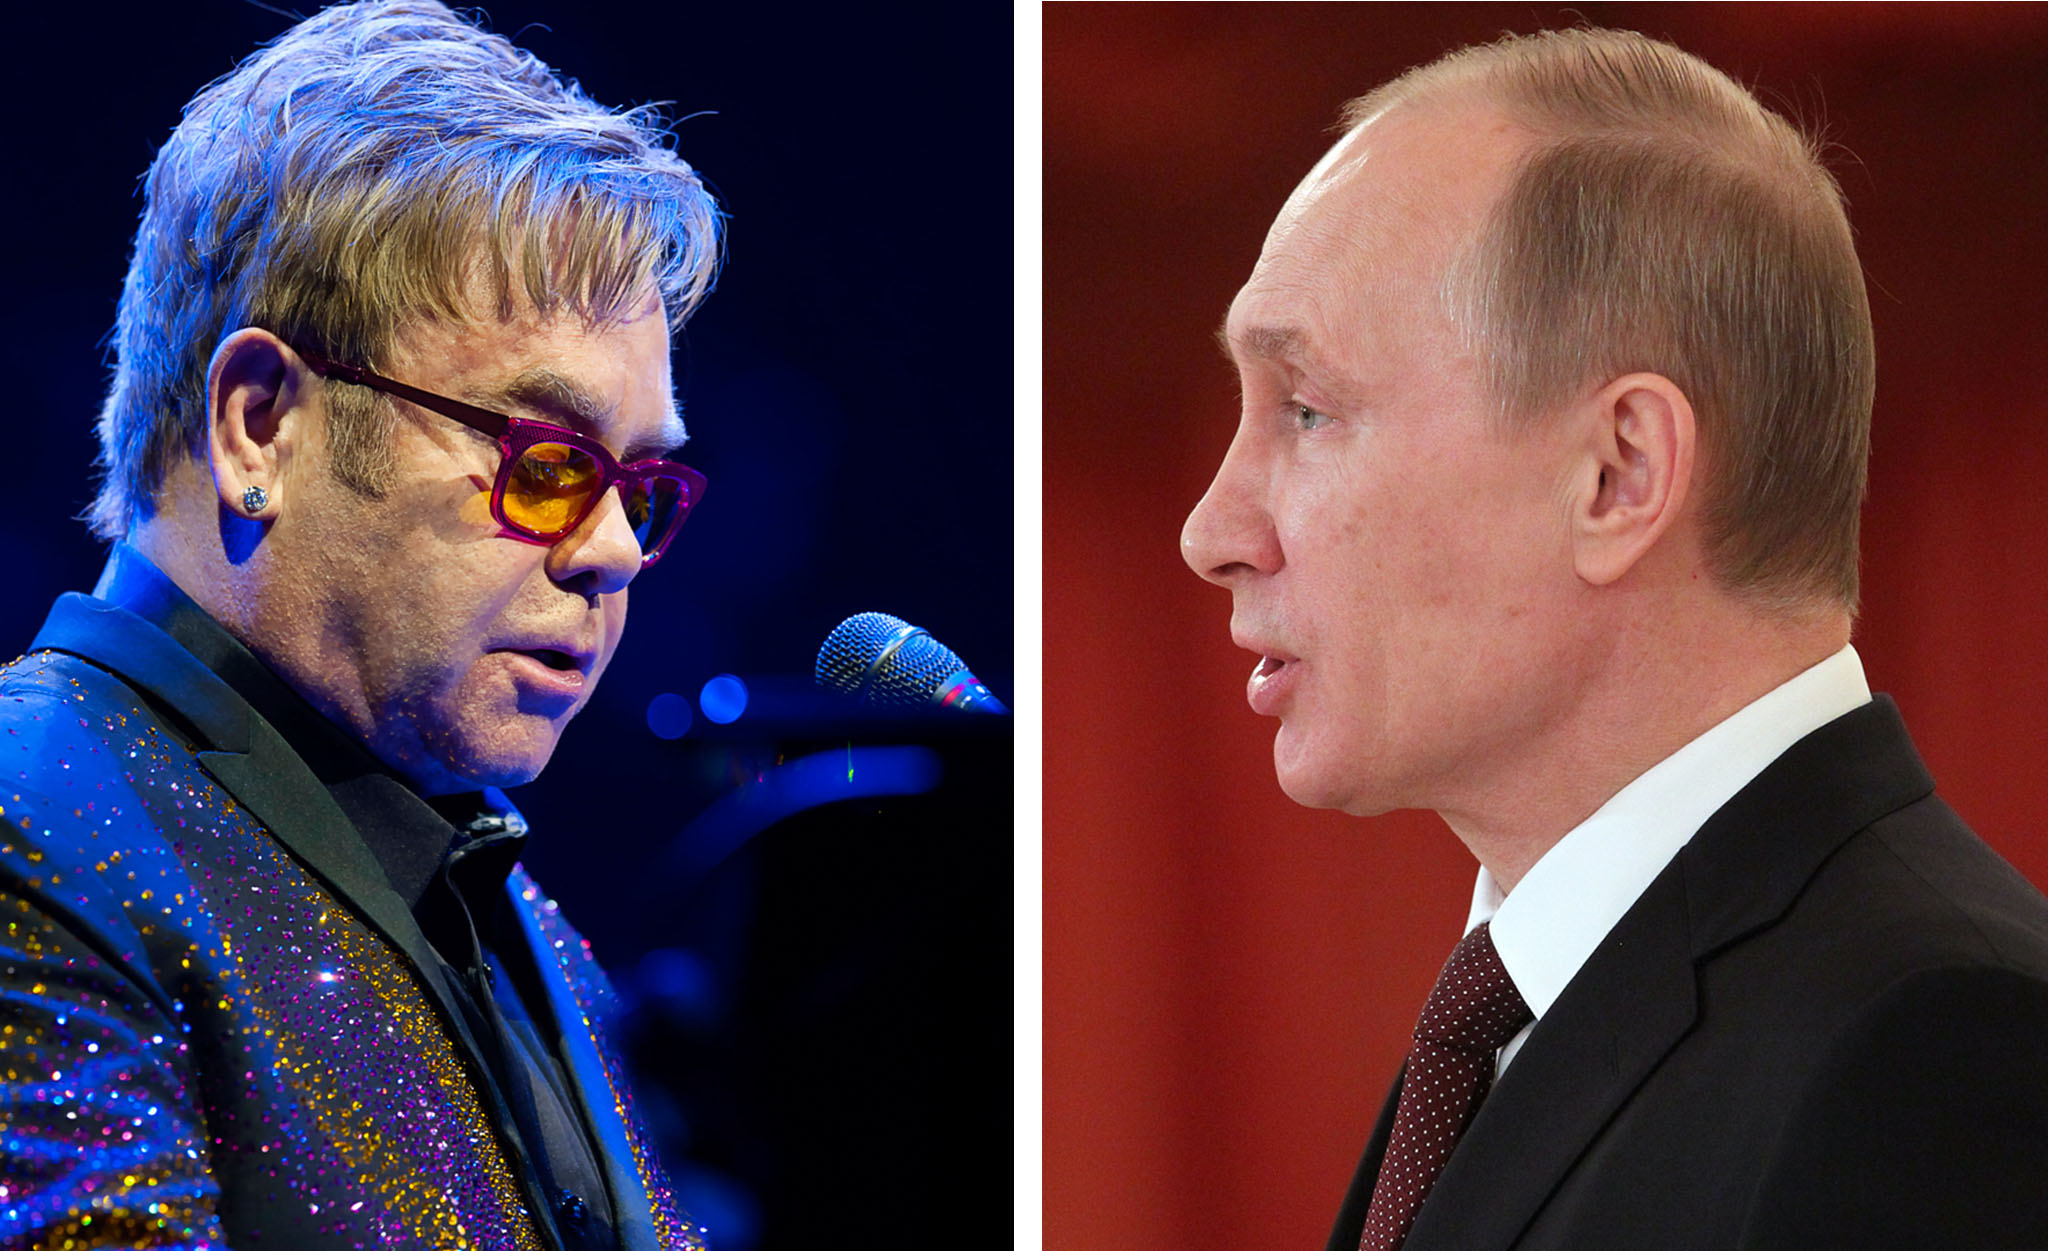 Elton John attacks Putin